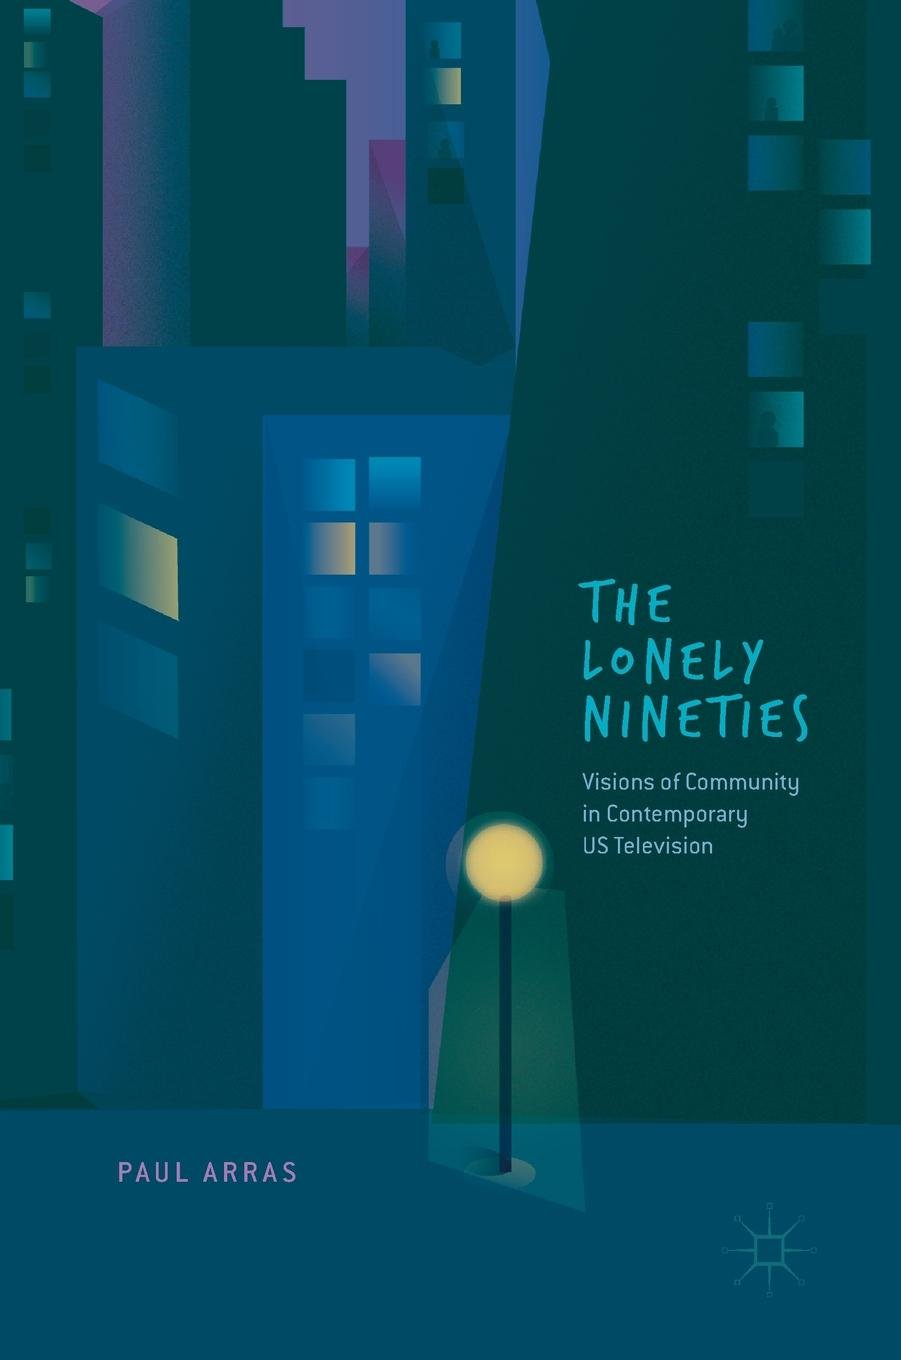 The Lonely Nineties: Visions of Community in Contemporary US Television PDF